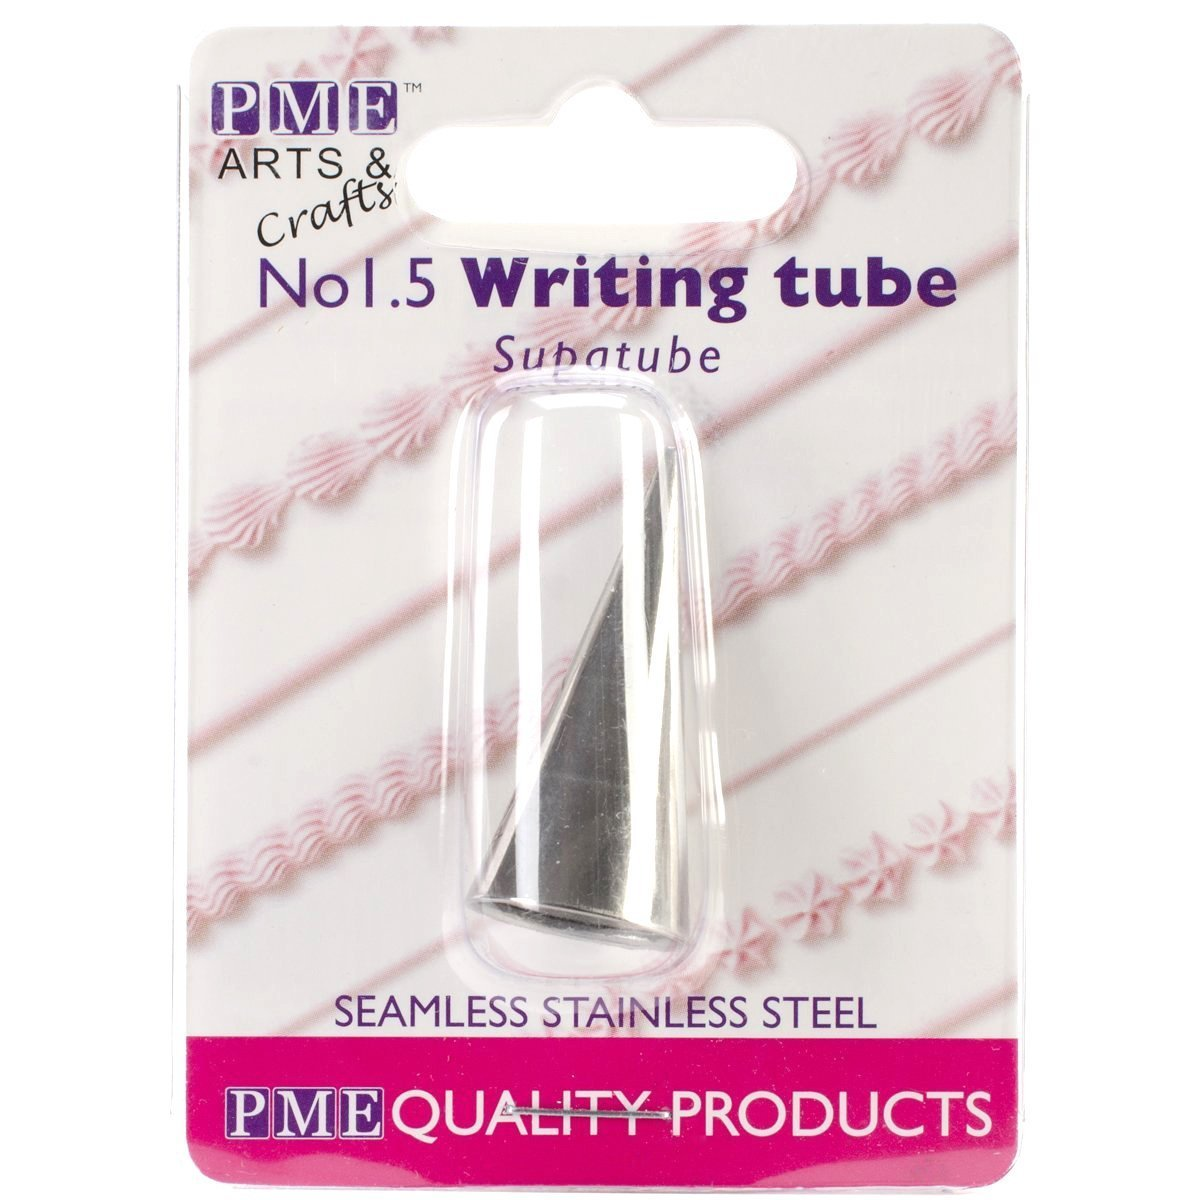 Writer No.1.5 ST1.5 PME Seamless Stainless Steel Supatube